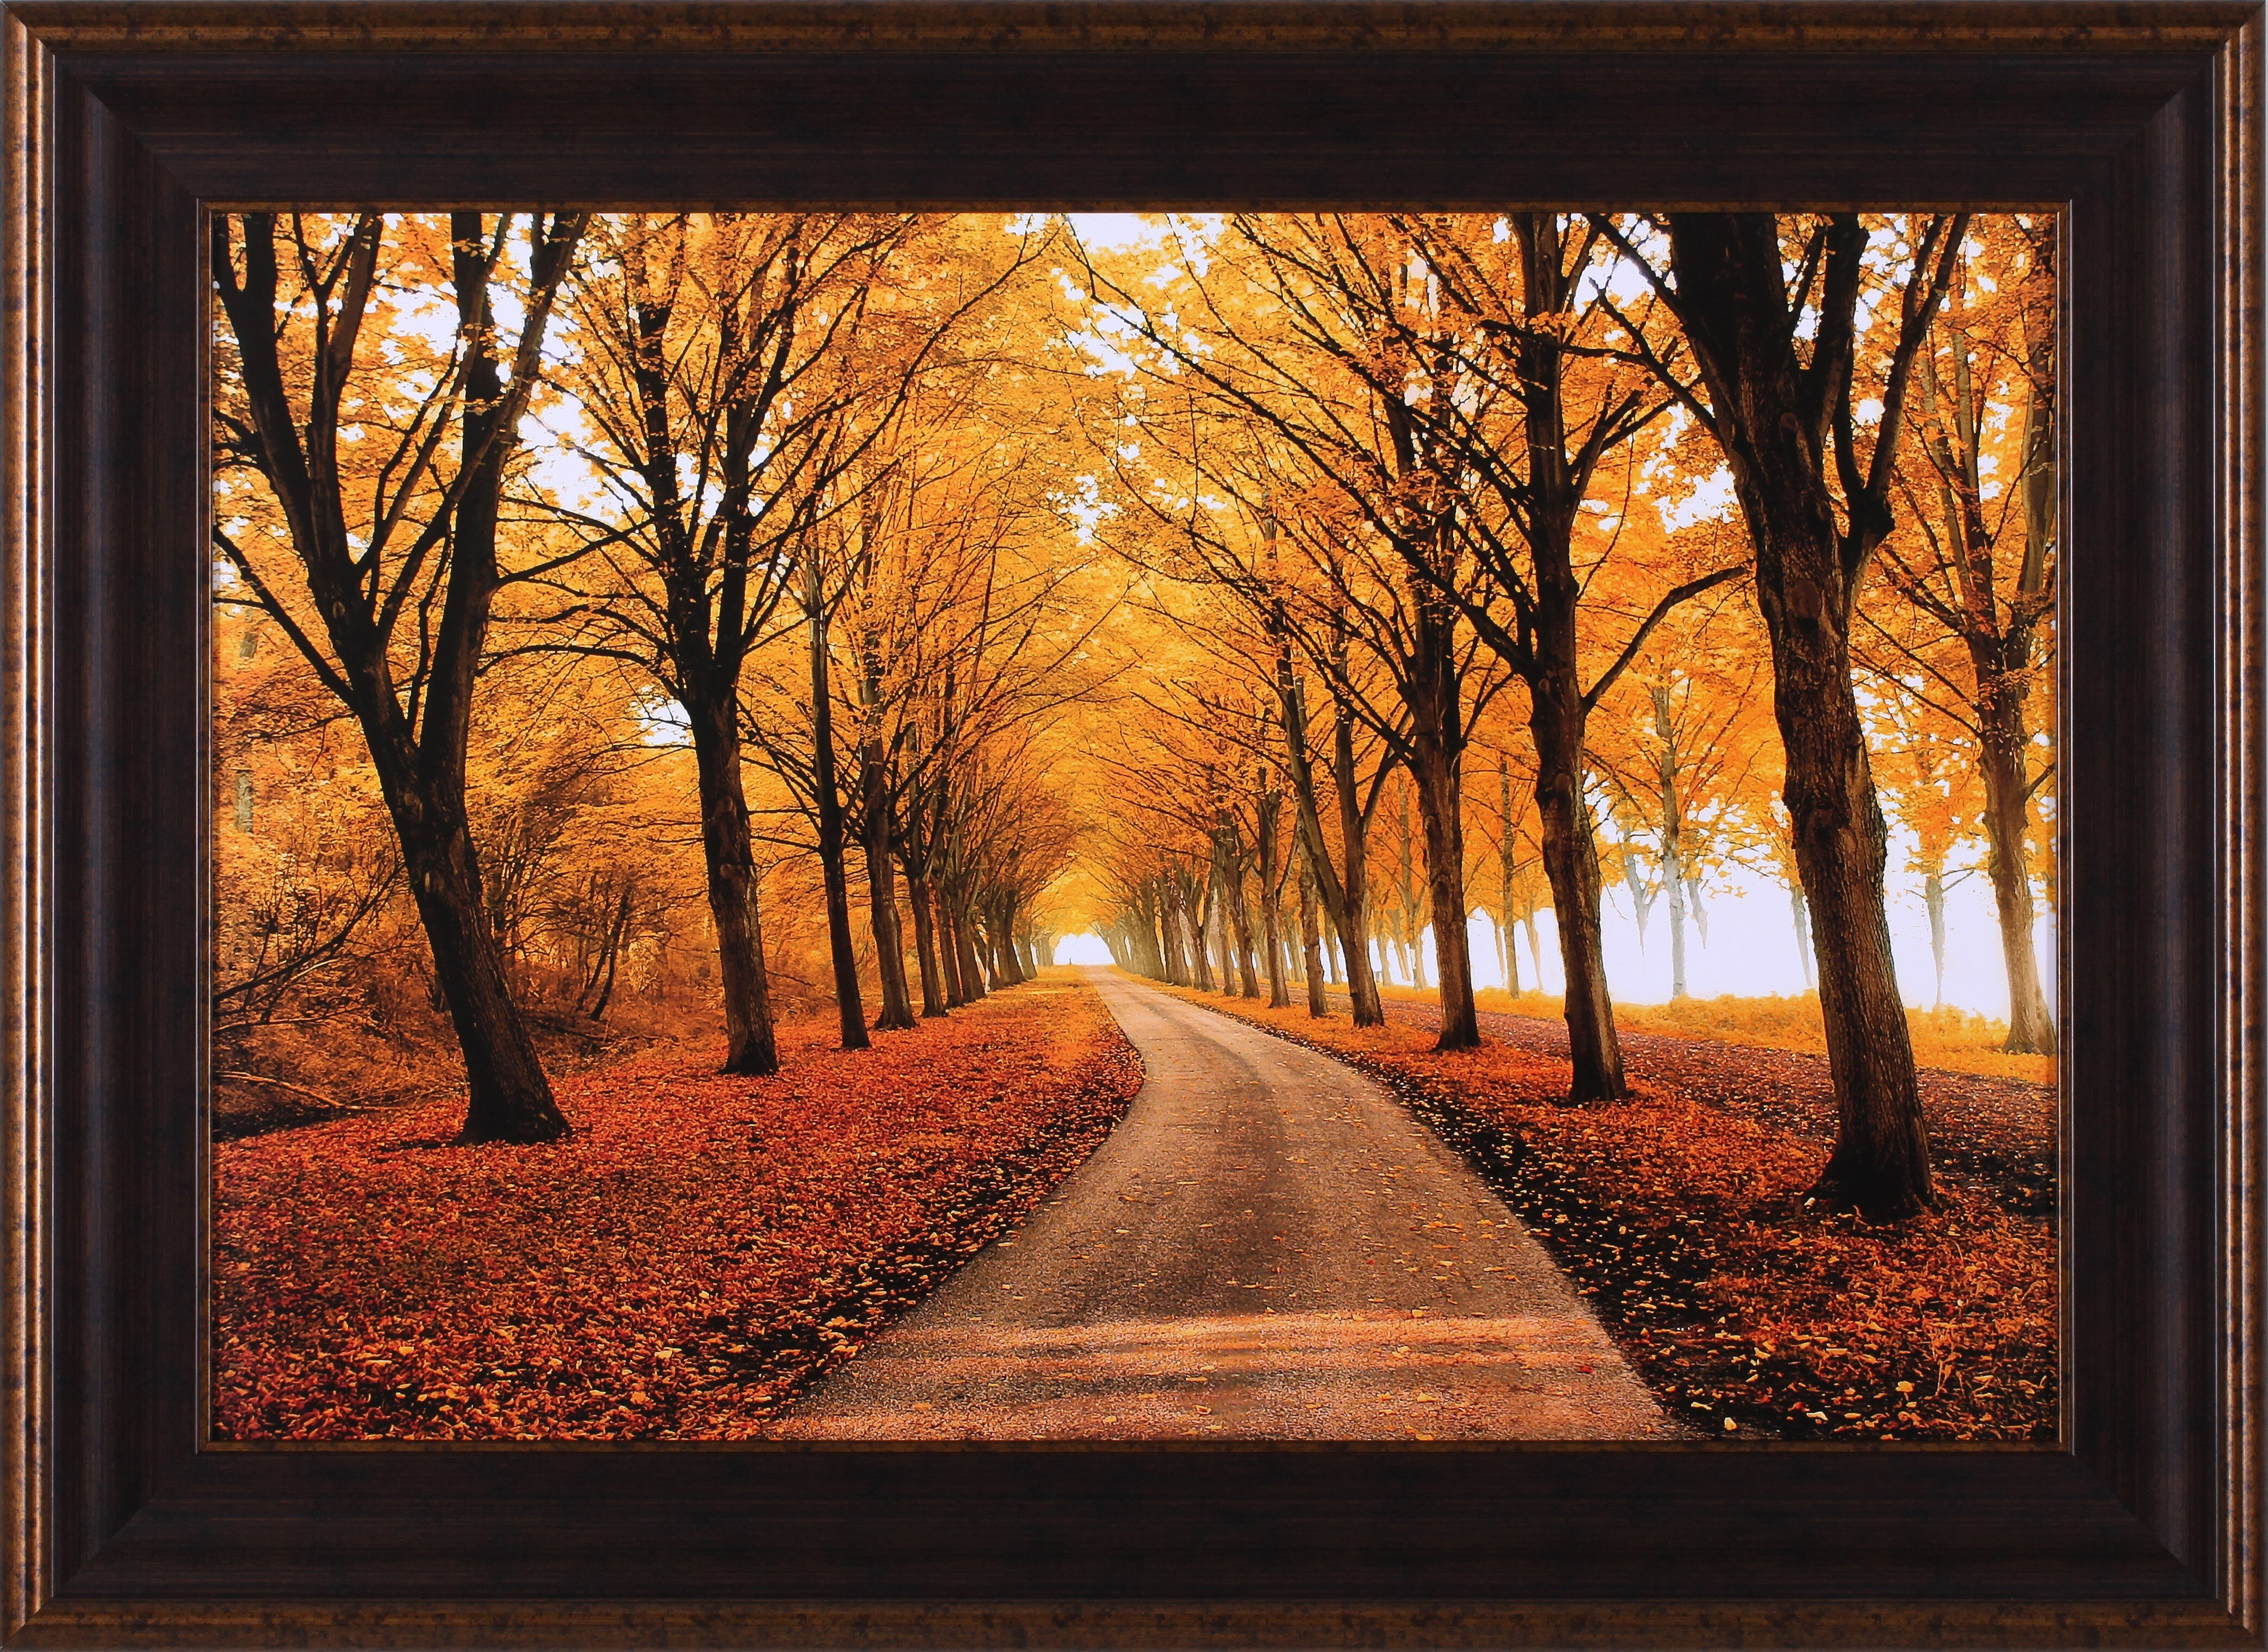 Framed Photographic Prints And Posters Wall Art You Ll Love In 2021 Wayfair